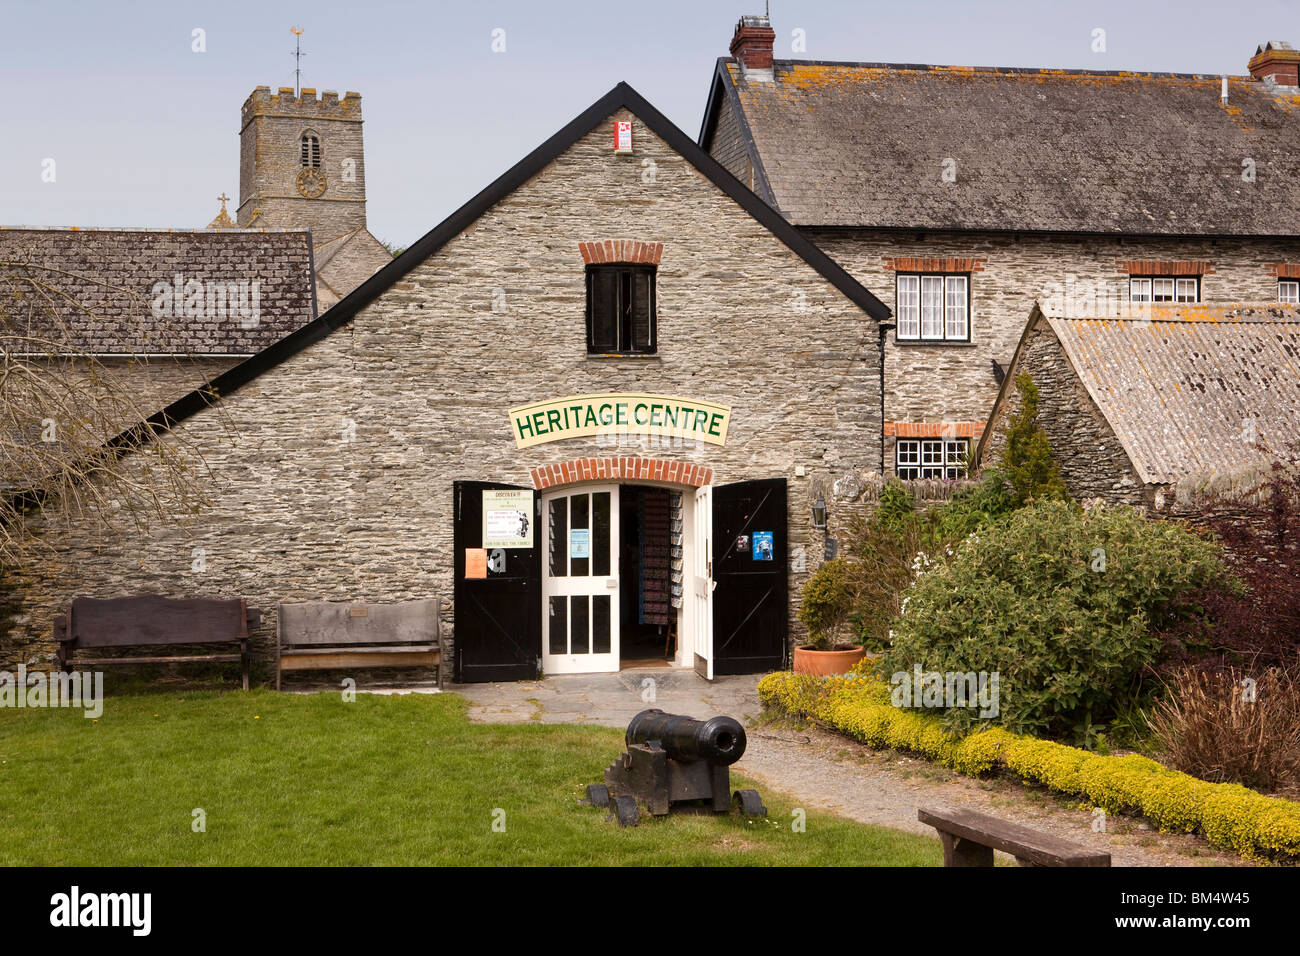 UK, England, Devon, Woolacombe, Mortehoe, Heritage Centre in former barn building - Stock Image